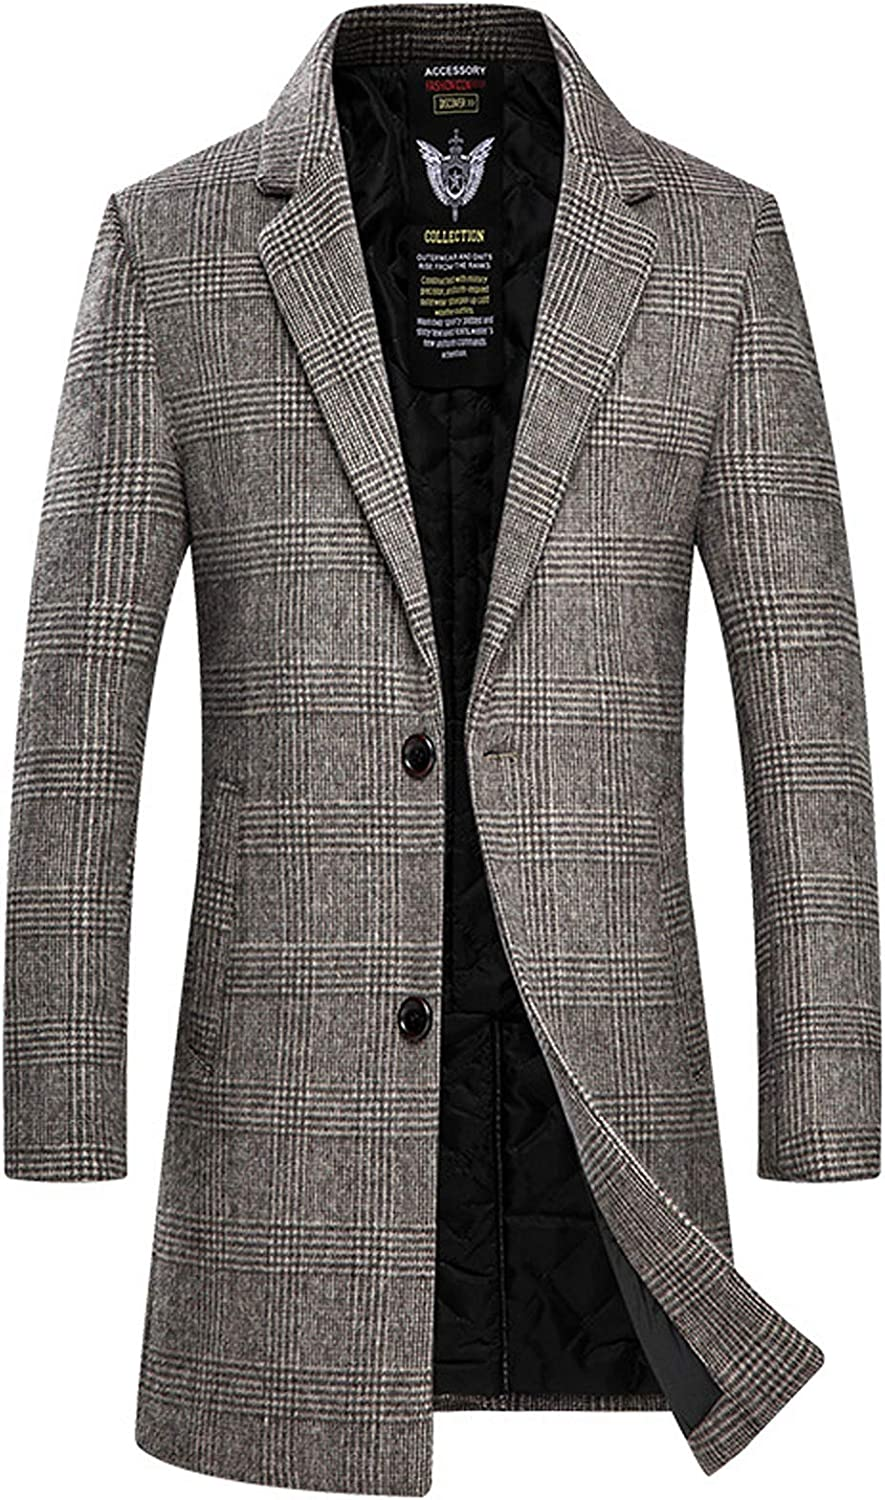 Men's Plaid Pea Coat Wool Blend Notched Lapel Single Breasted Two Buttons Grey Checkered